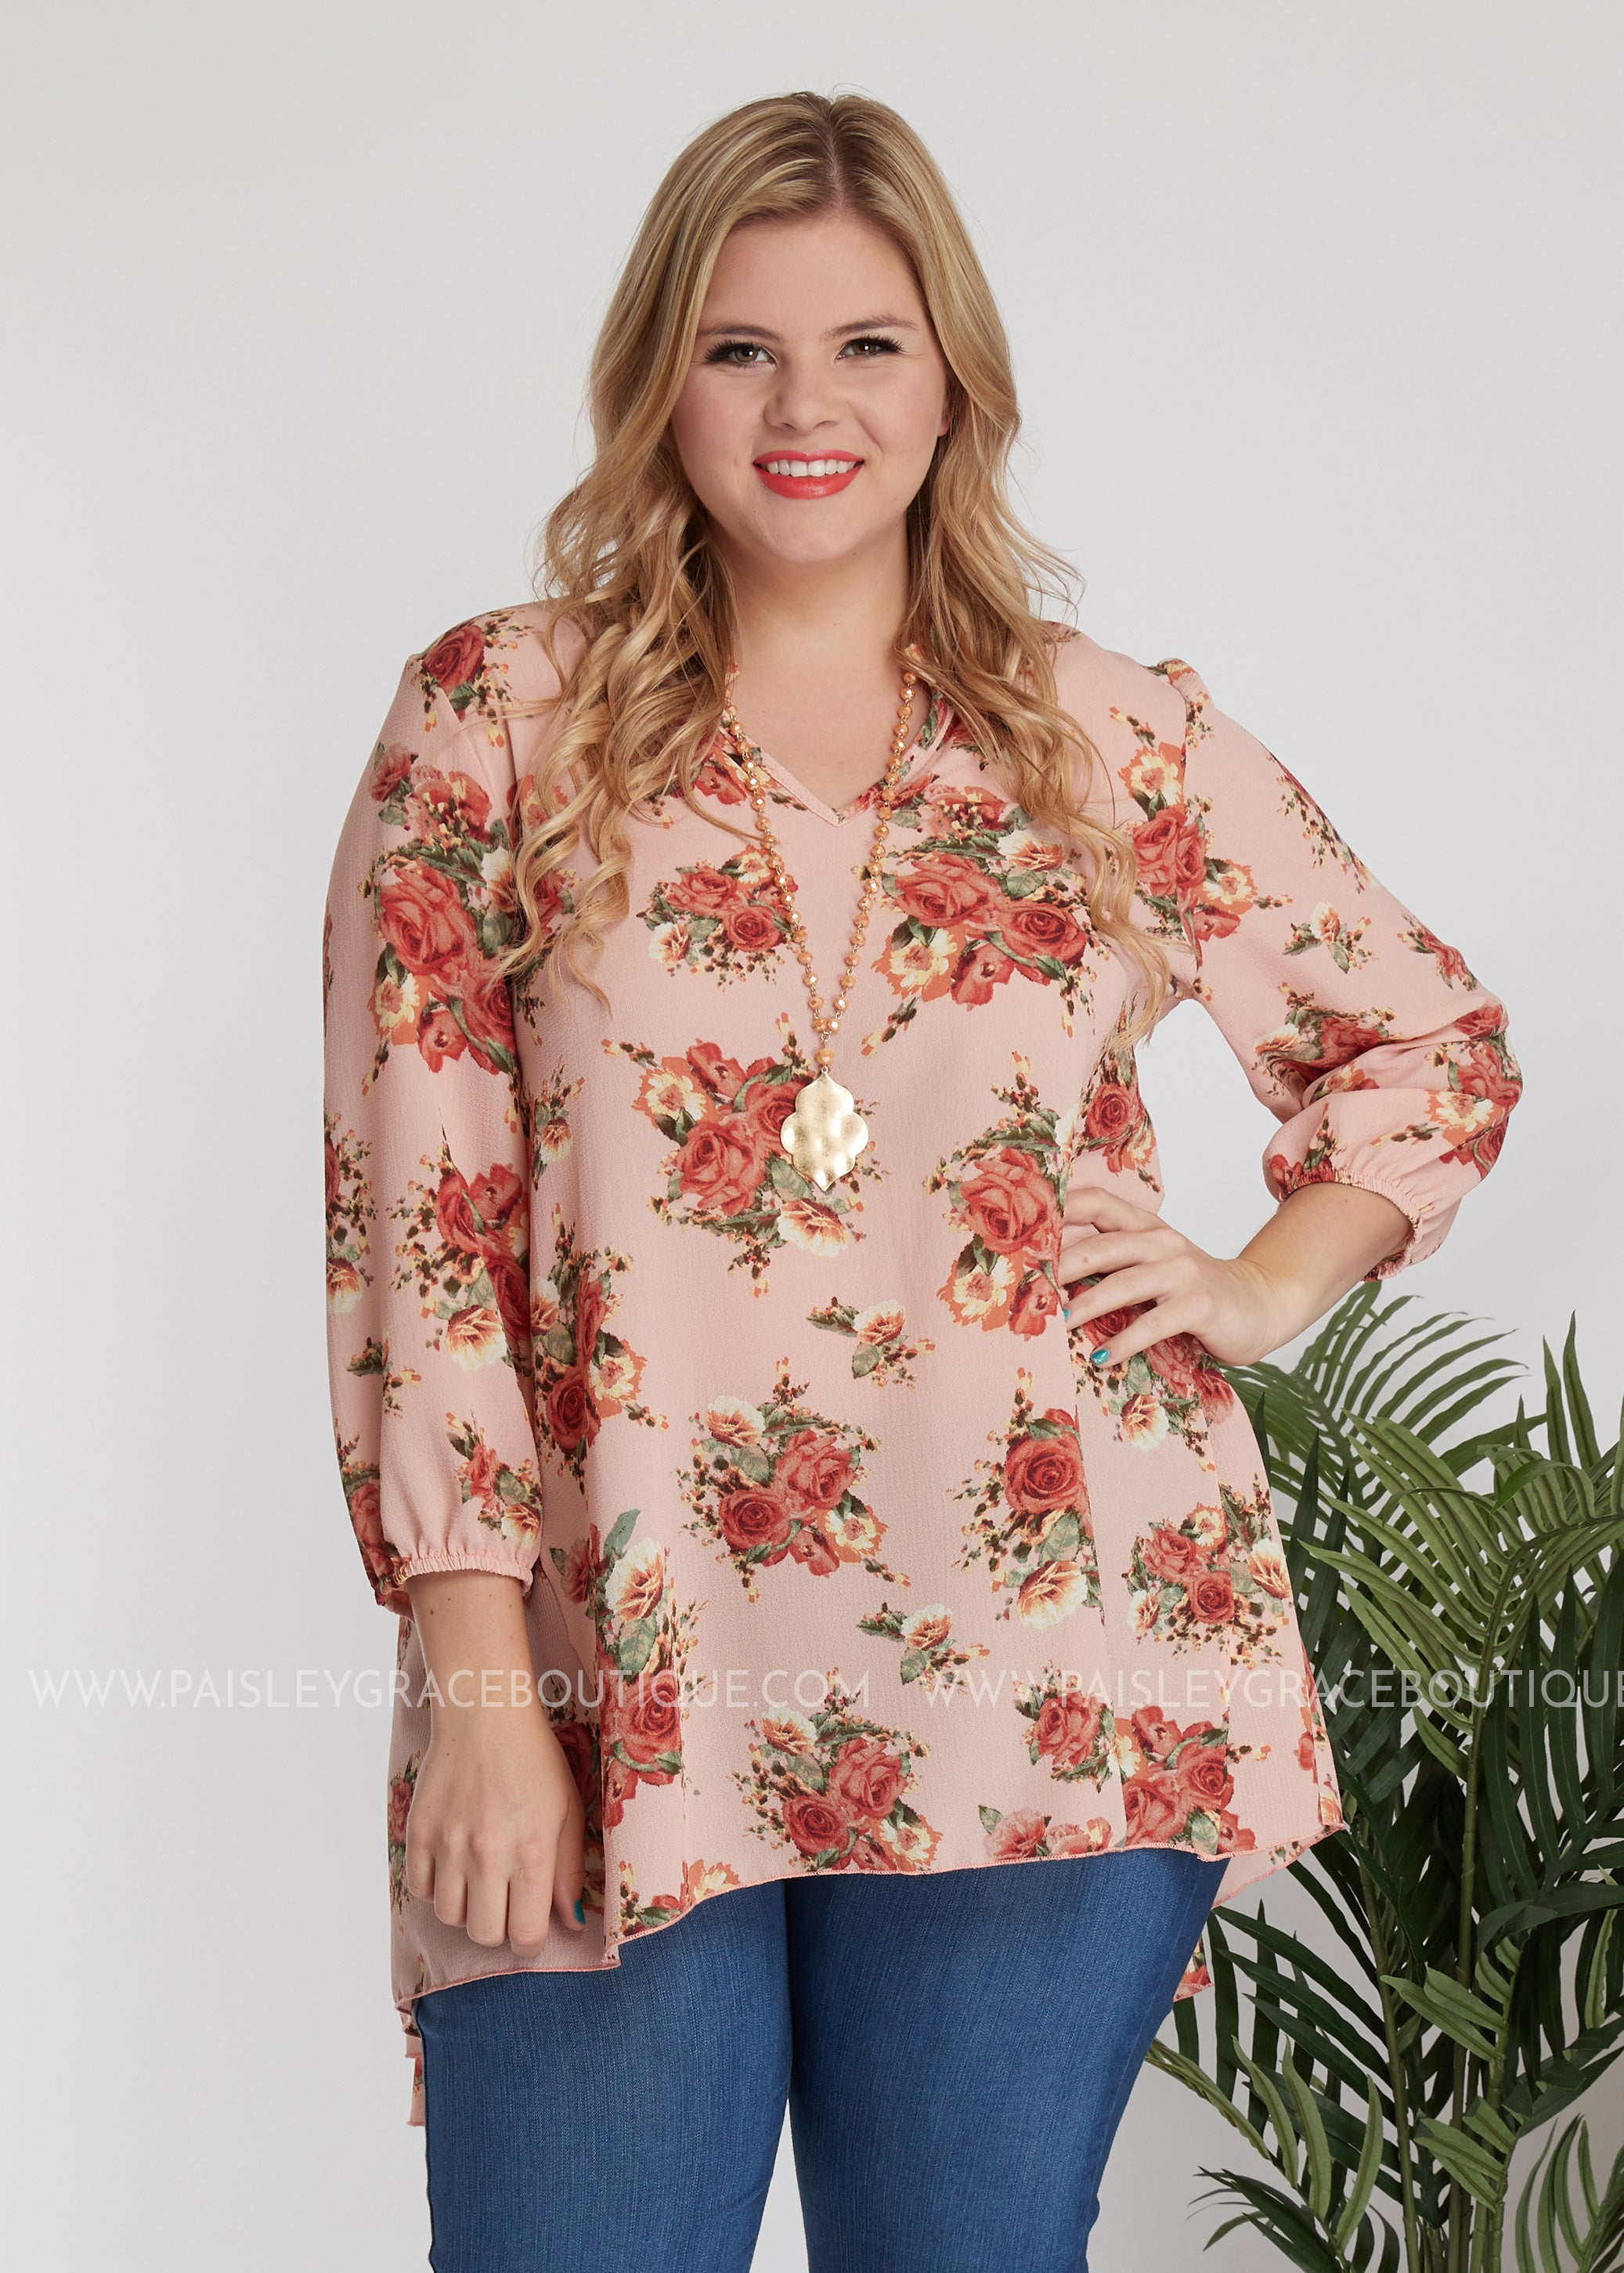 Just Peachy Top - FINAL SALE